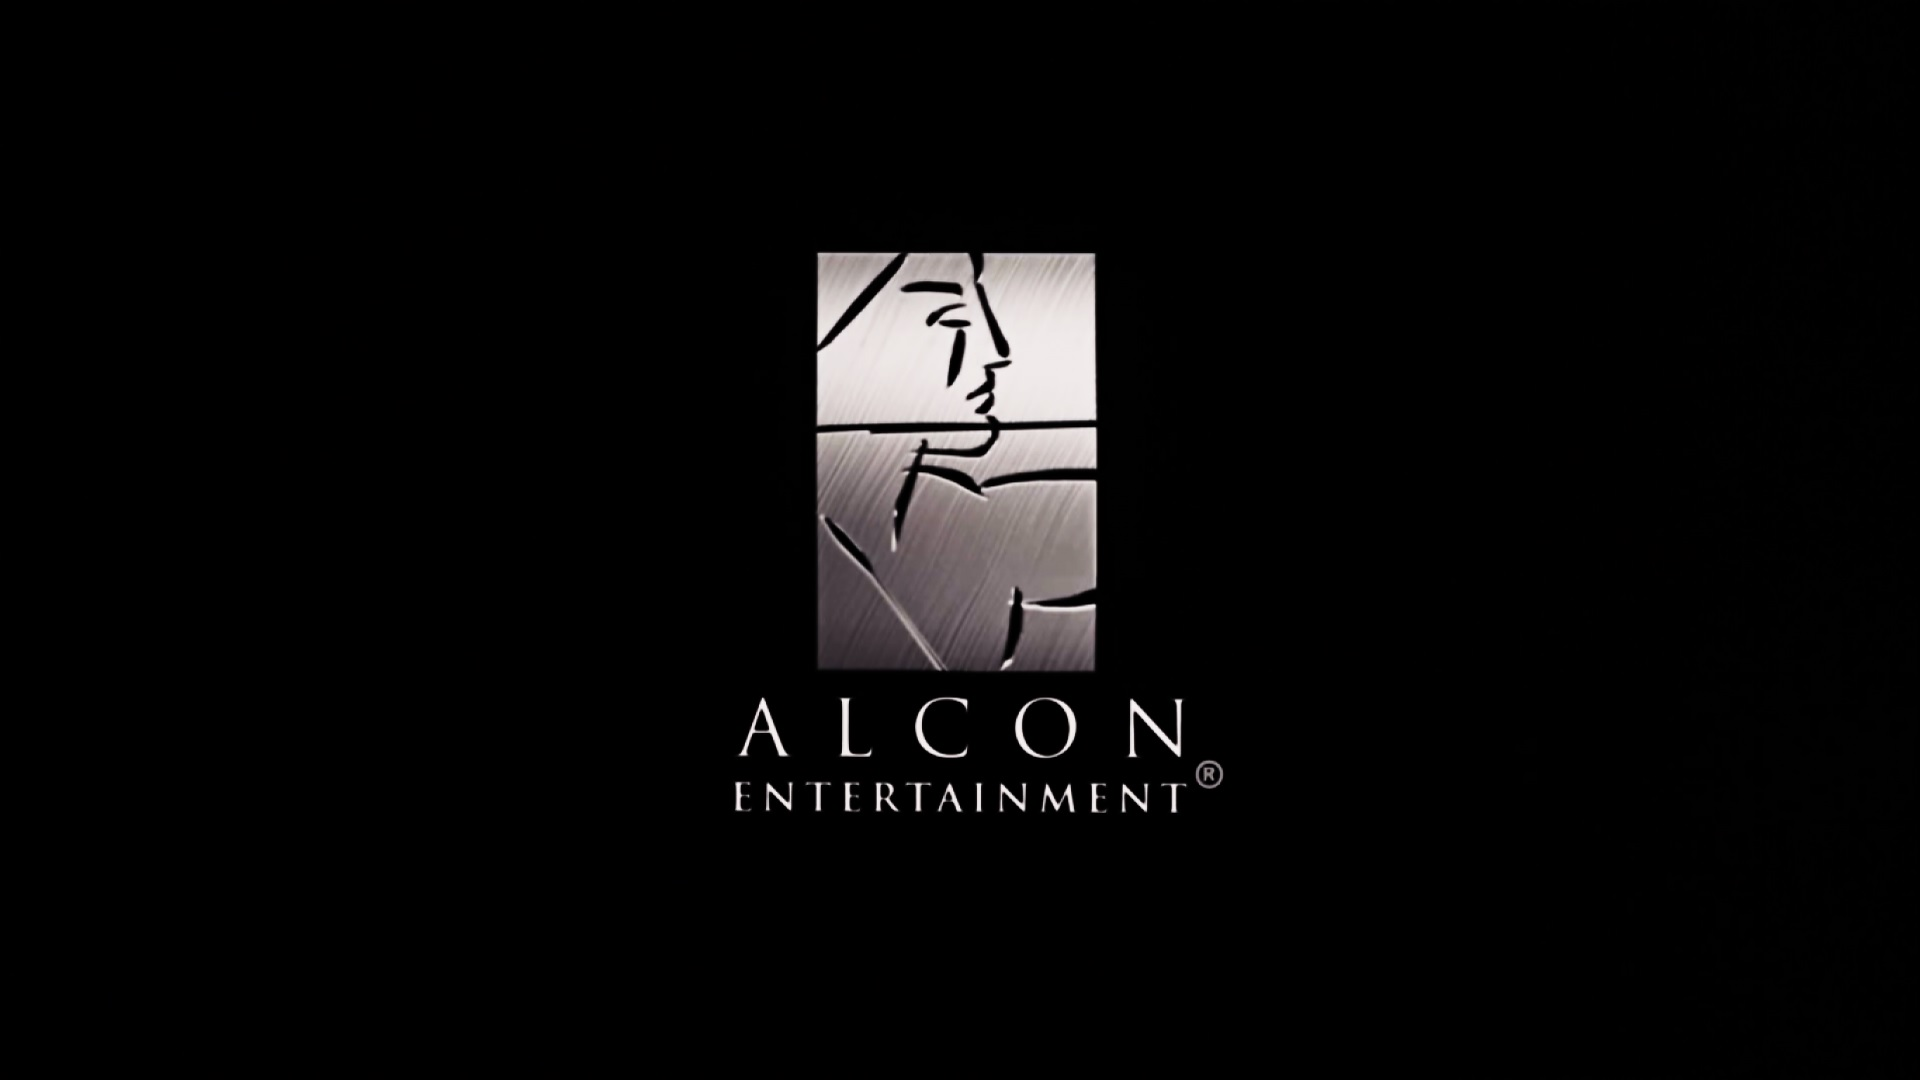 Alcon Entertainment/Other